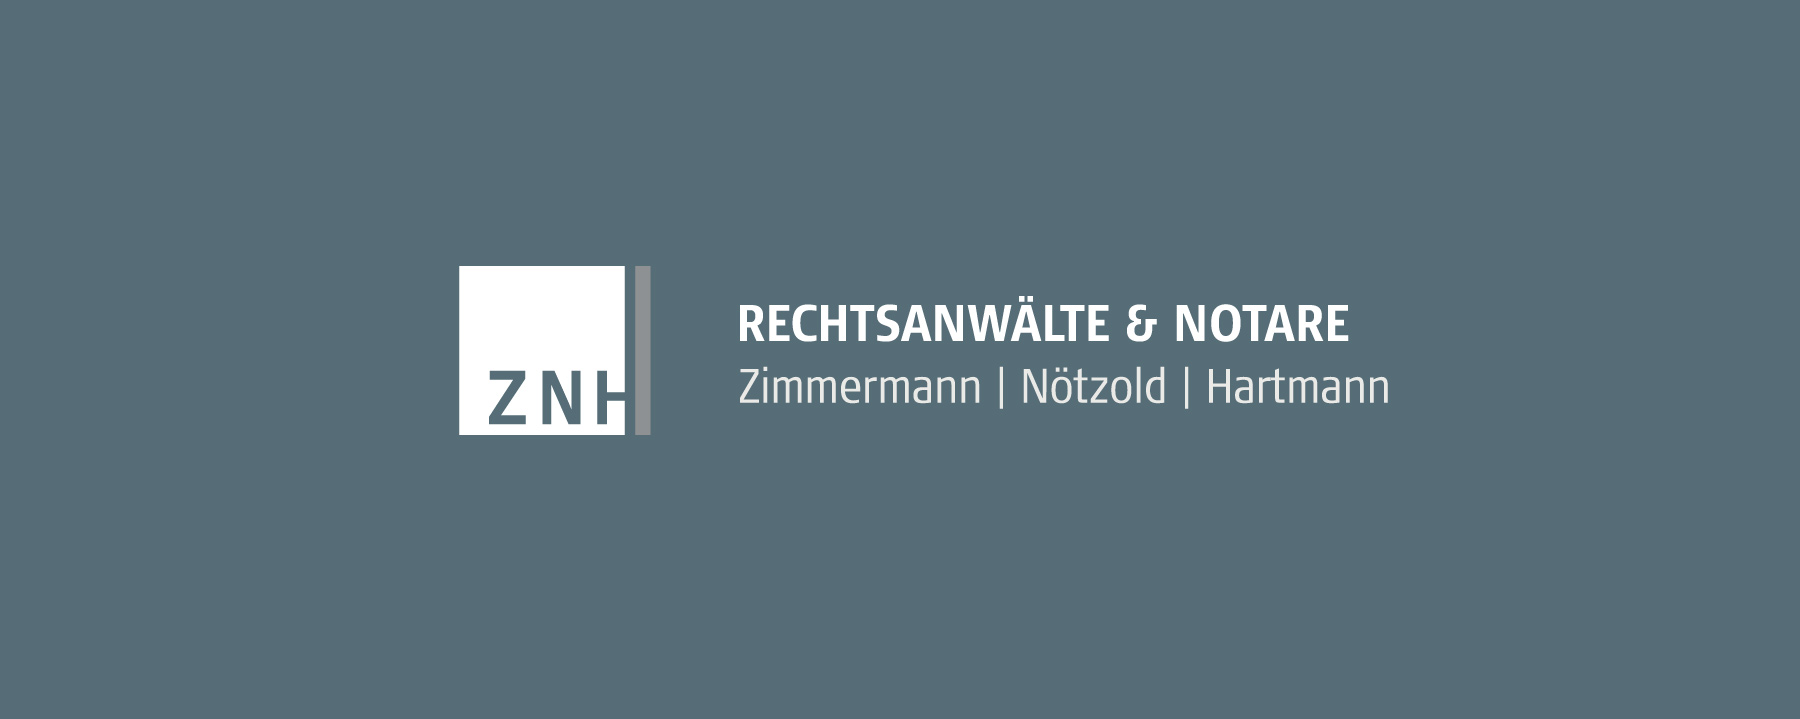 Logodesign ZNH Rechtsanwälte & Notare | Berlin | by Ilyas Susever